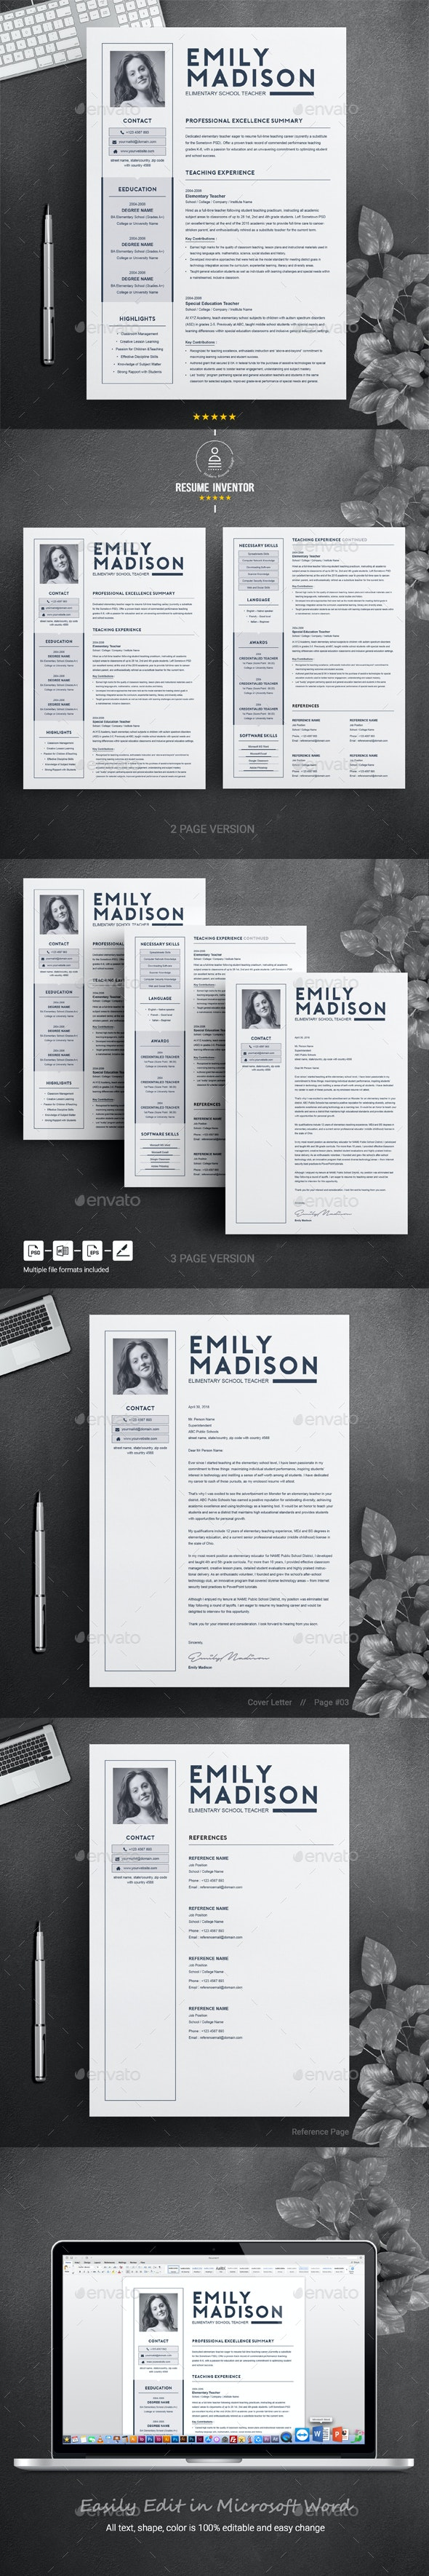 Teacher Resume Template for MS Word | Cover Letter - Resumes Stationery